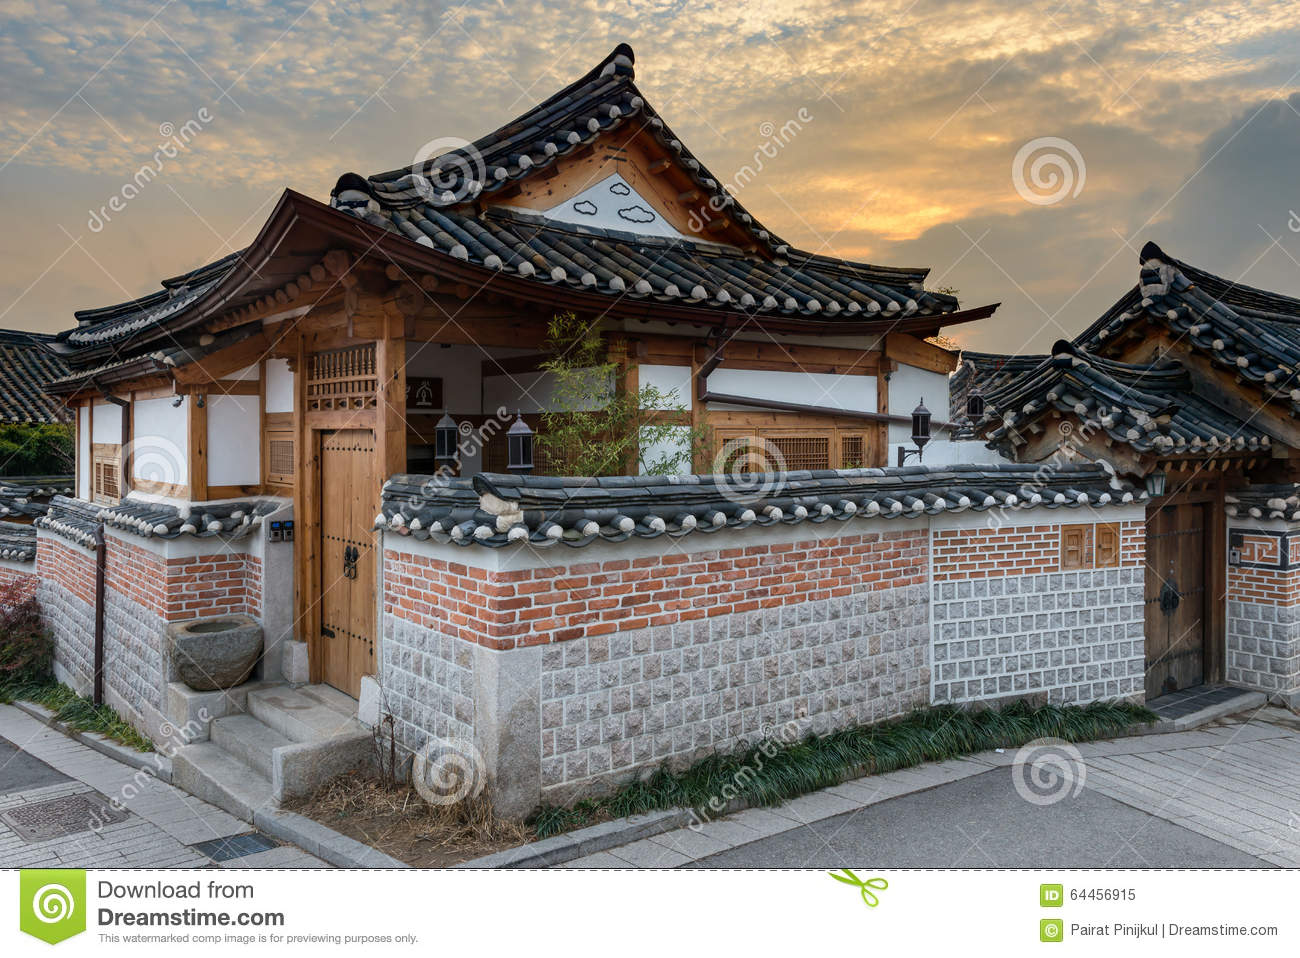 korean traditional architecture essay Traditional architecture vs modern architecture architects should be designing structures by incorporating vernacular styles into new technologies.